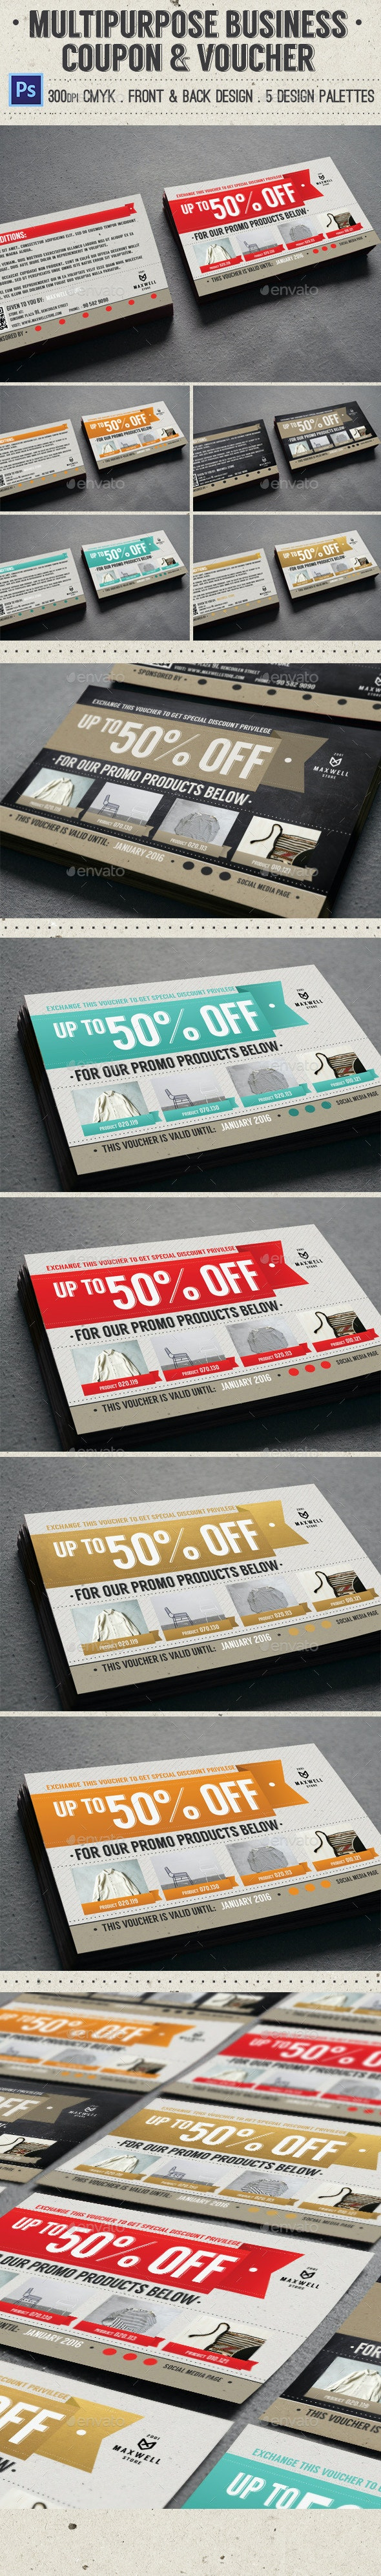 Multipurpose Business Coupon & Voucher - Loyalty Cards Cards & Invites